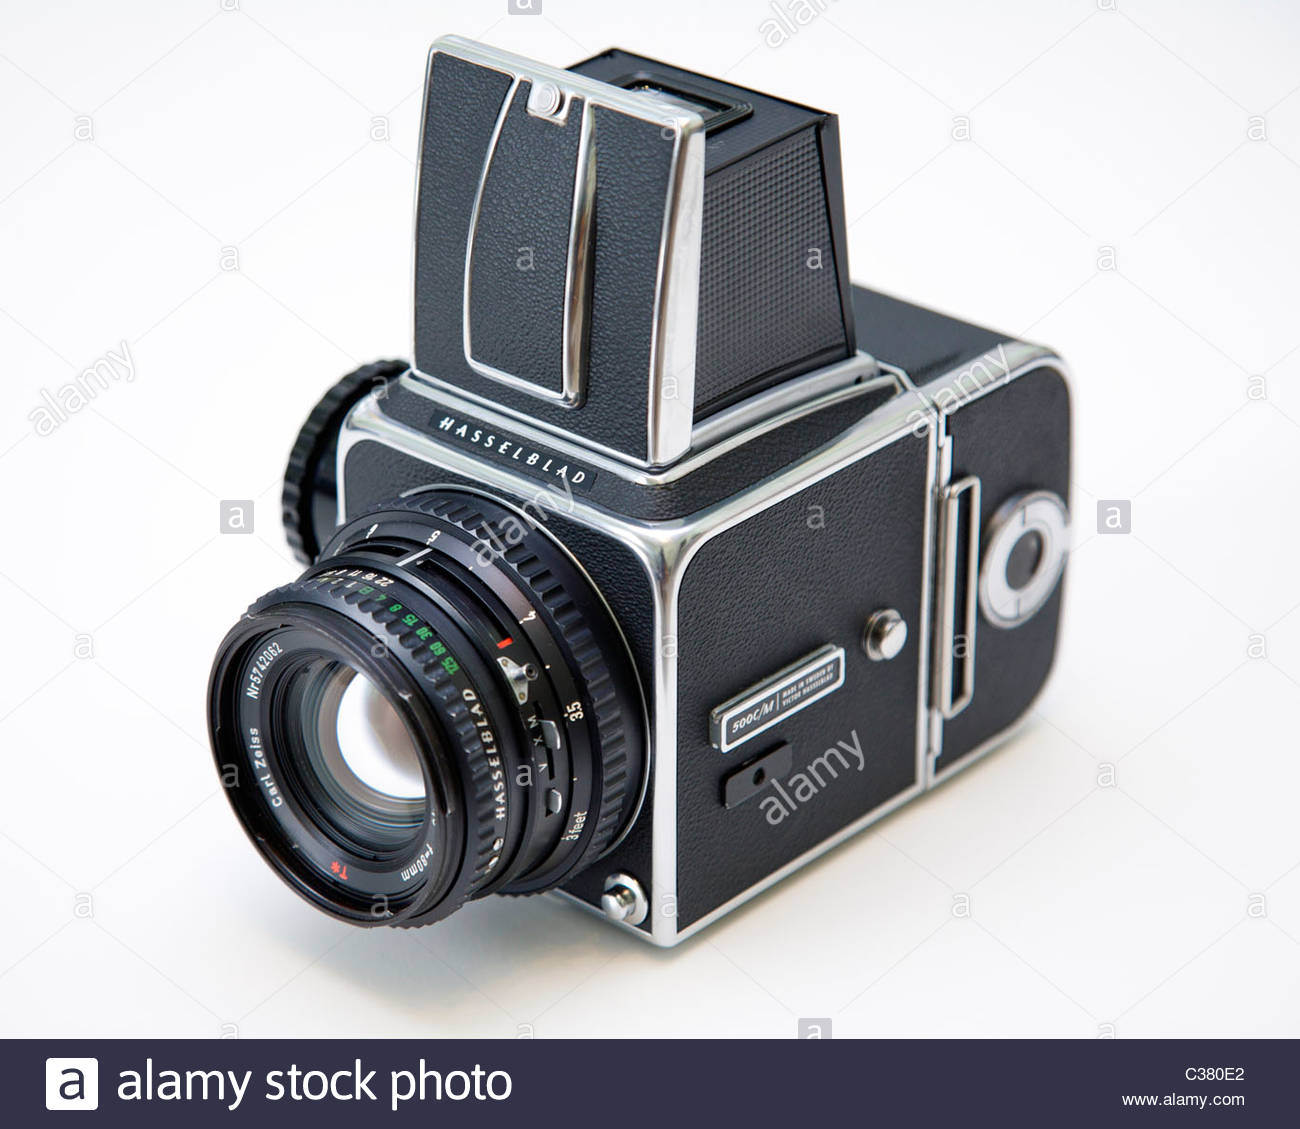 Hasselblad Camera Stock Photos & Hasselblad Camera Stock